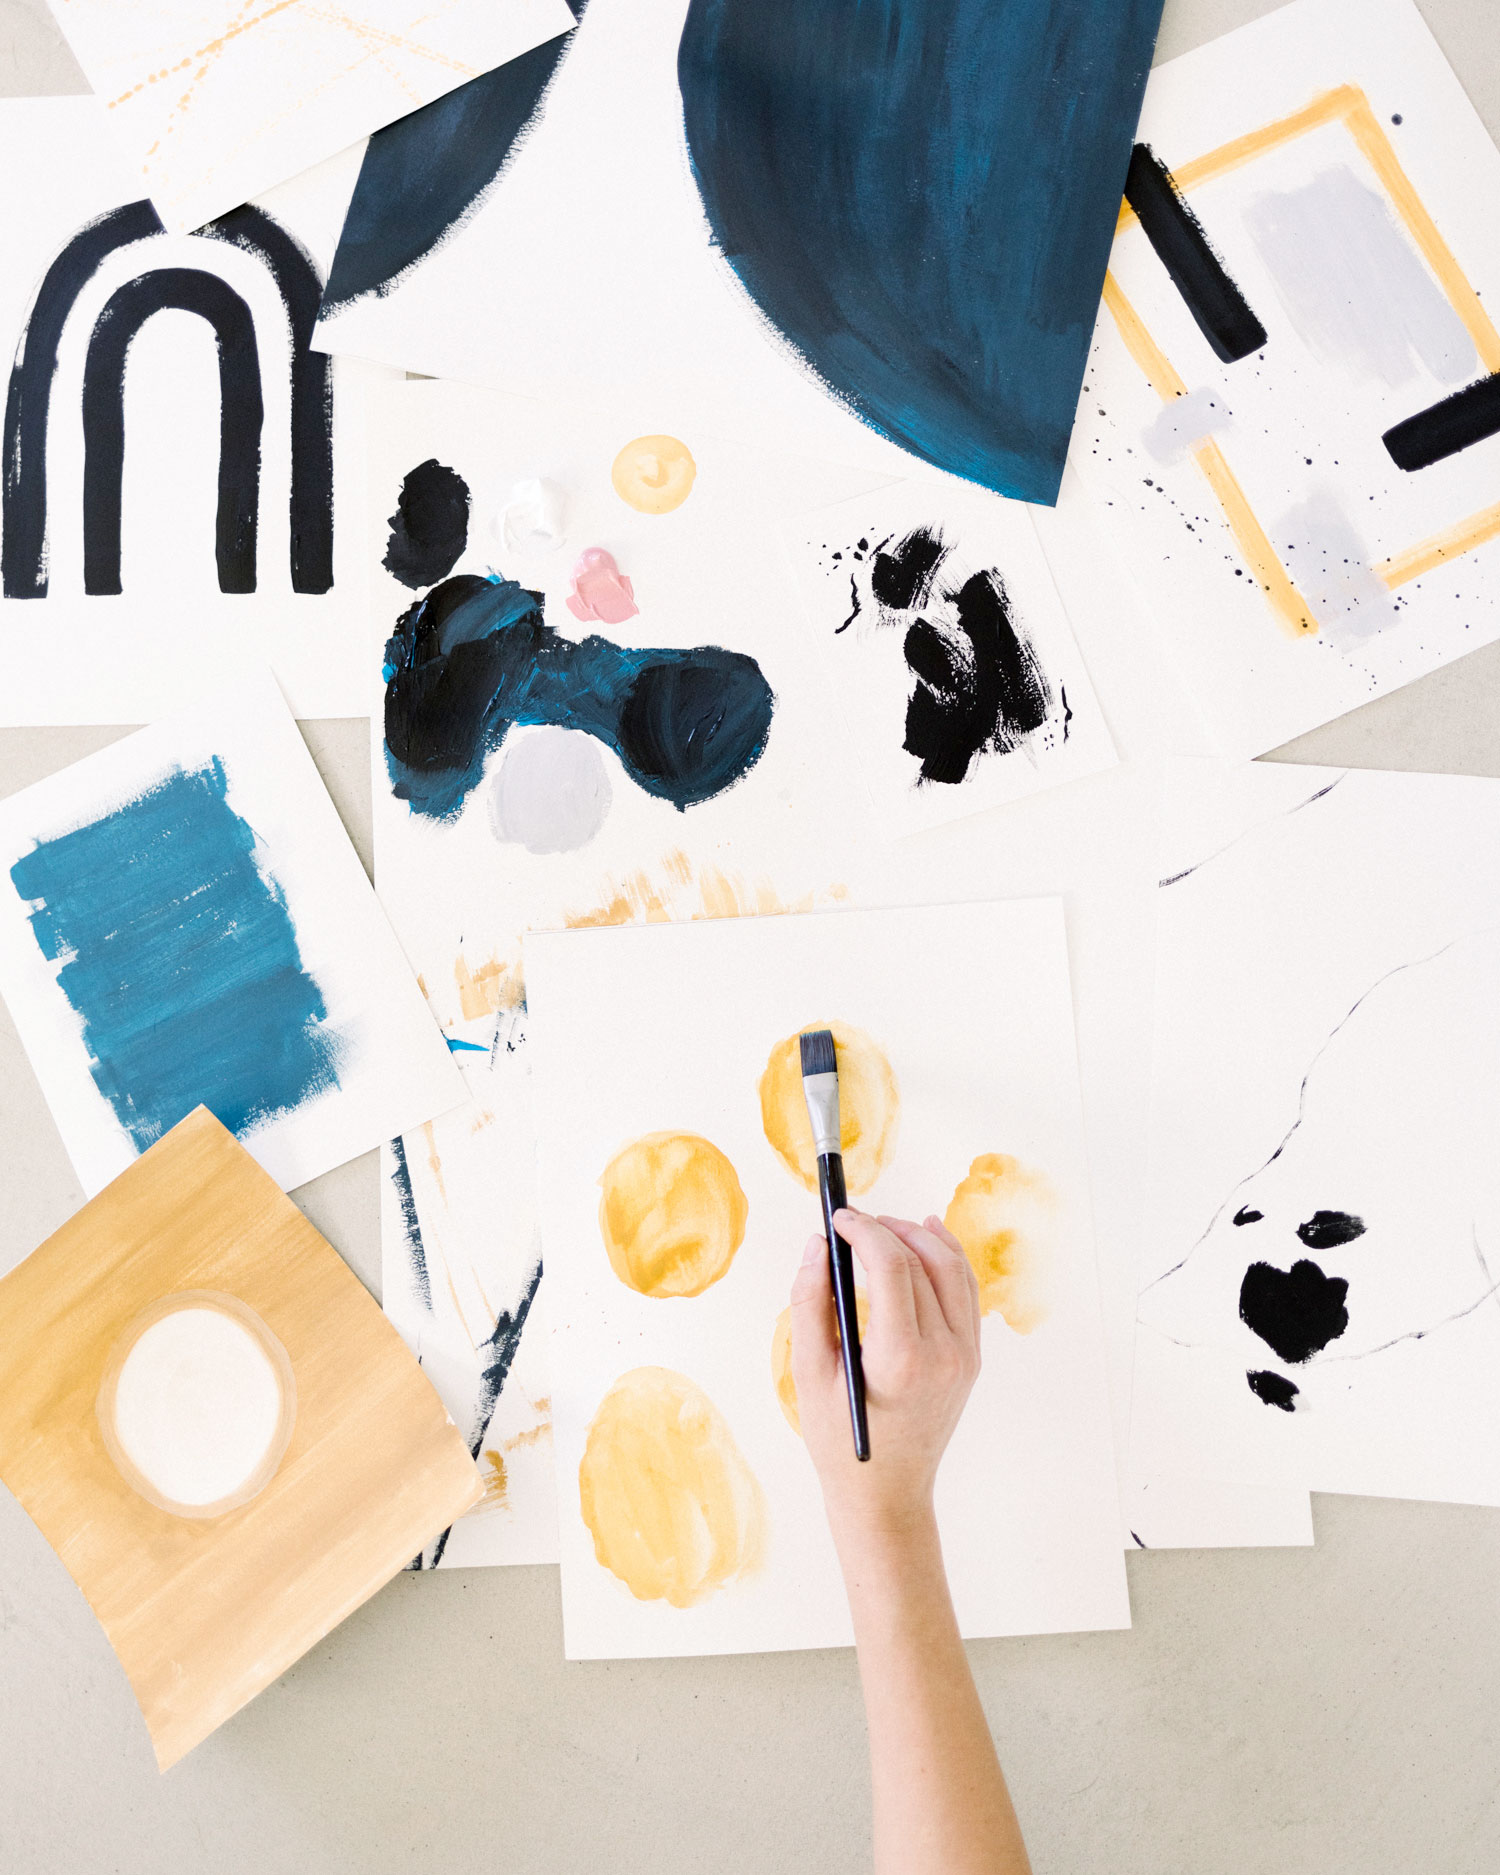 Ideas for creative hobbies you can develop instead of scrolling through Instagram all day | The Good Living Blog